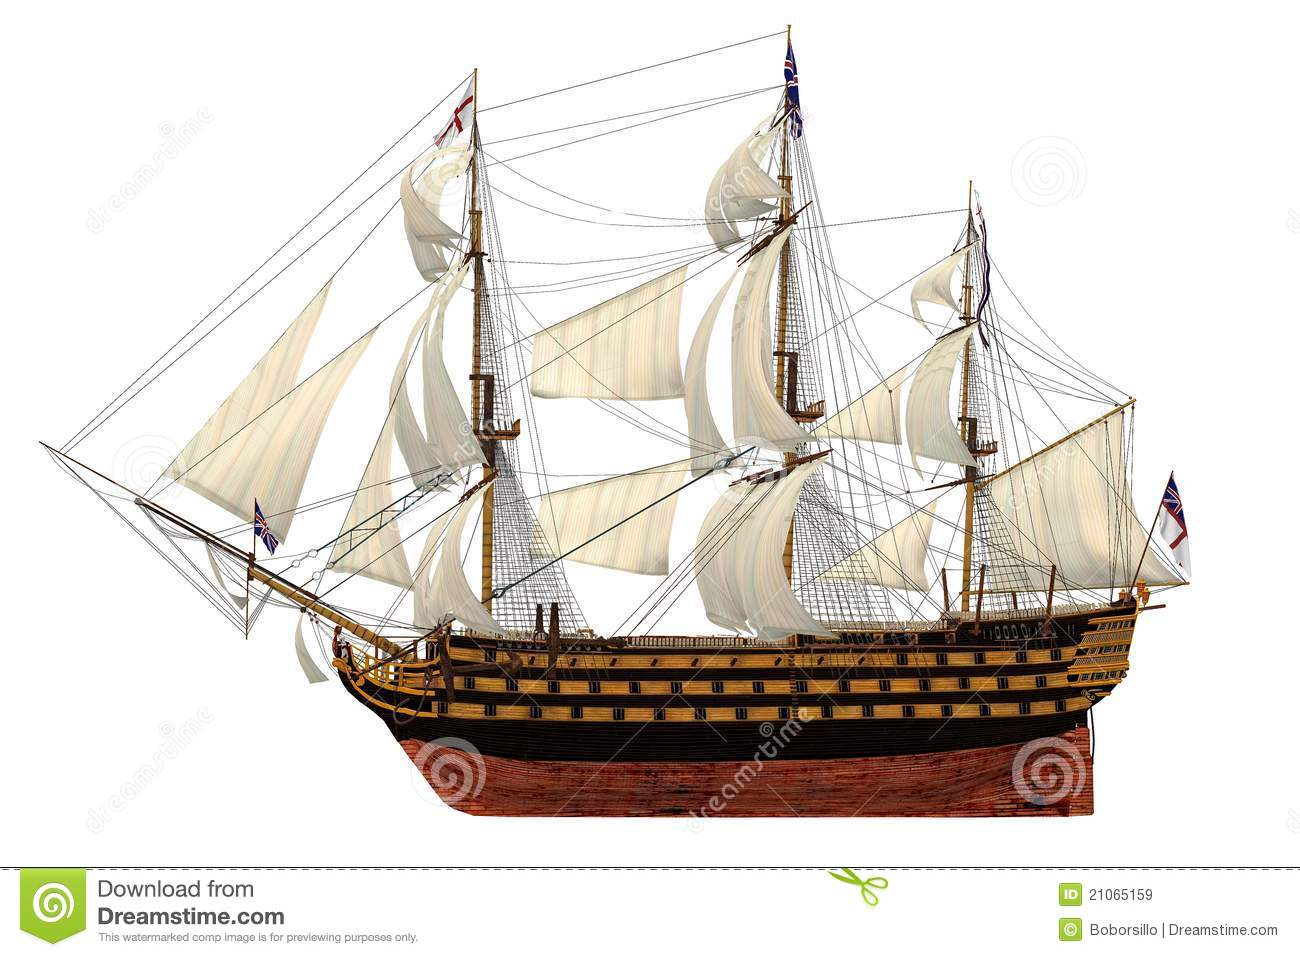 Transparant Zeil Gamma 1000 43 Images About Model Ship On Pinterest Sailing Ships